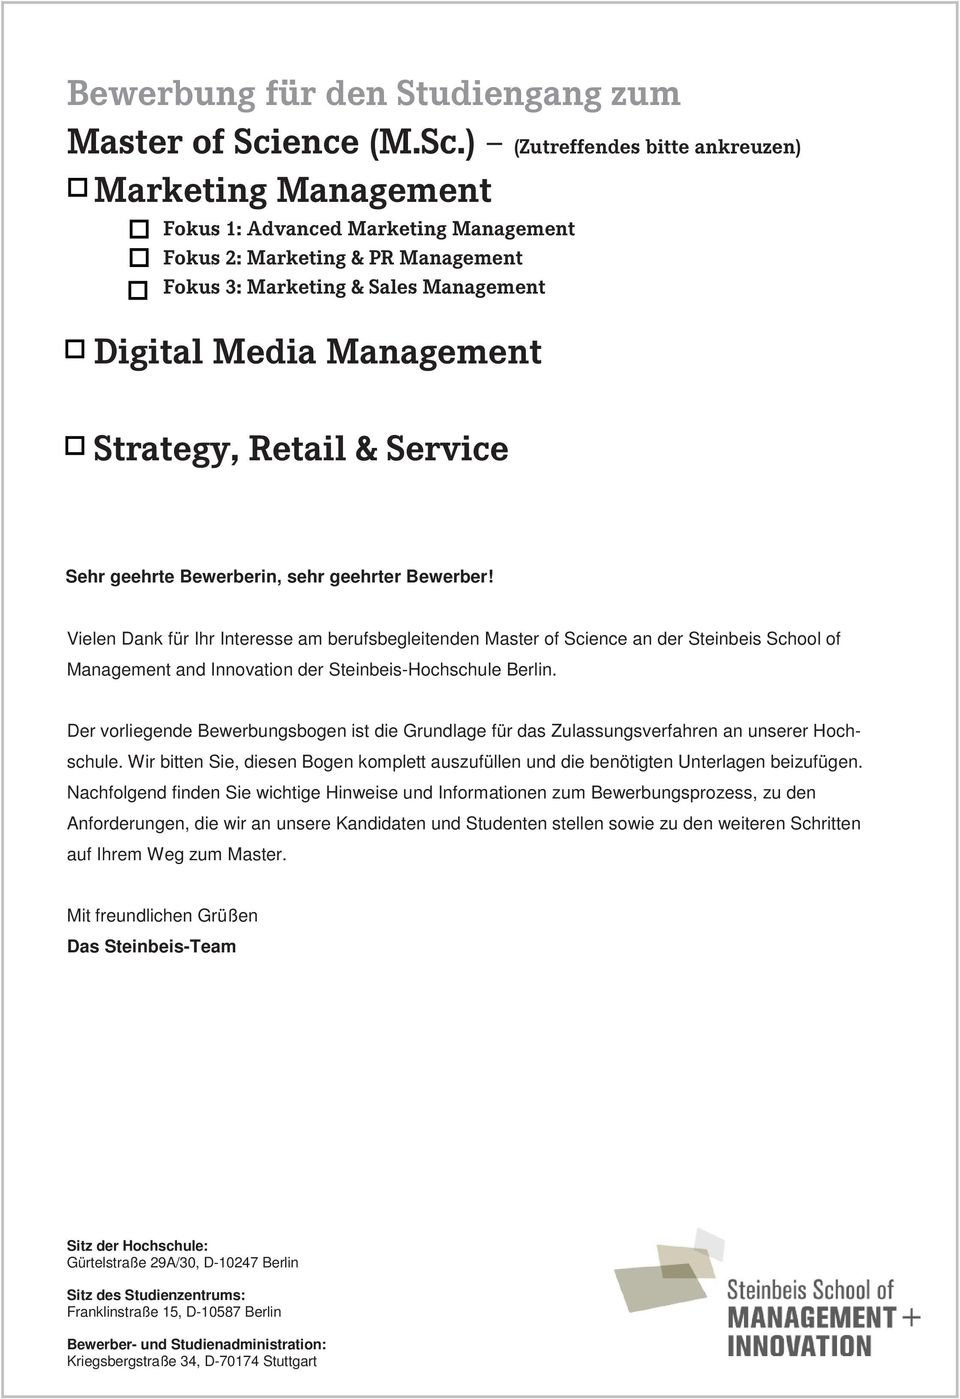 ) (Zutreffendes bitte ankreuzen) Marketing Management Fokus 1: Advanced Marketing Management Fokus 2: Marketing & PR Management Fokus 3: Marketing & Sales Management Digital Media Management